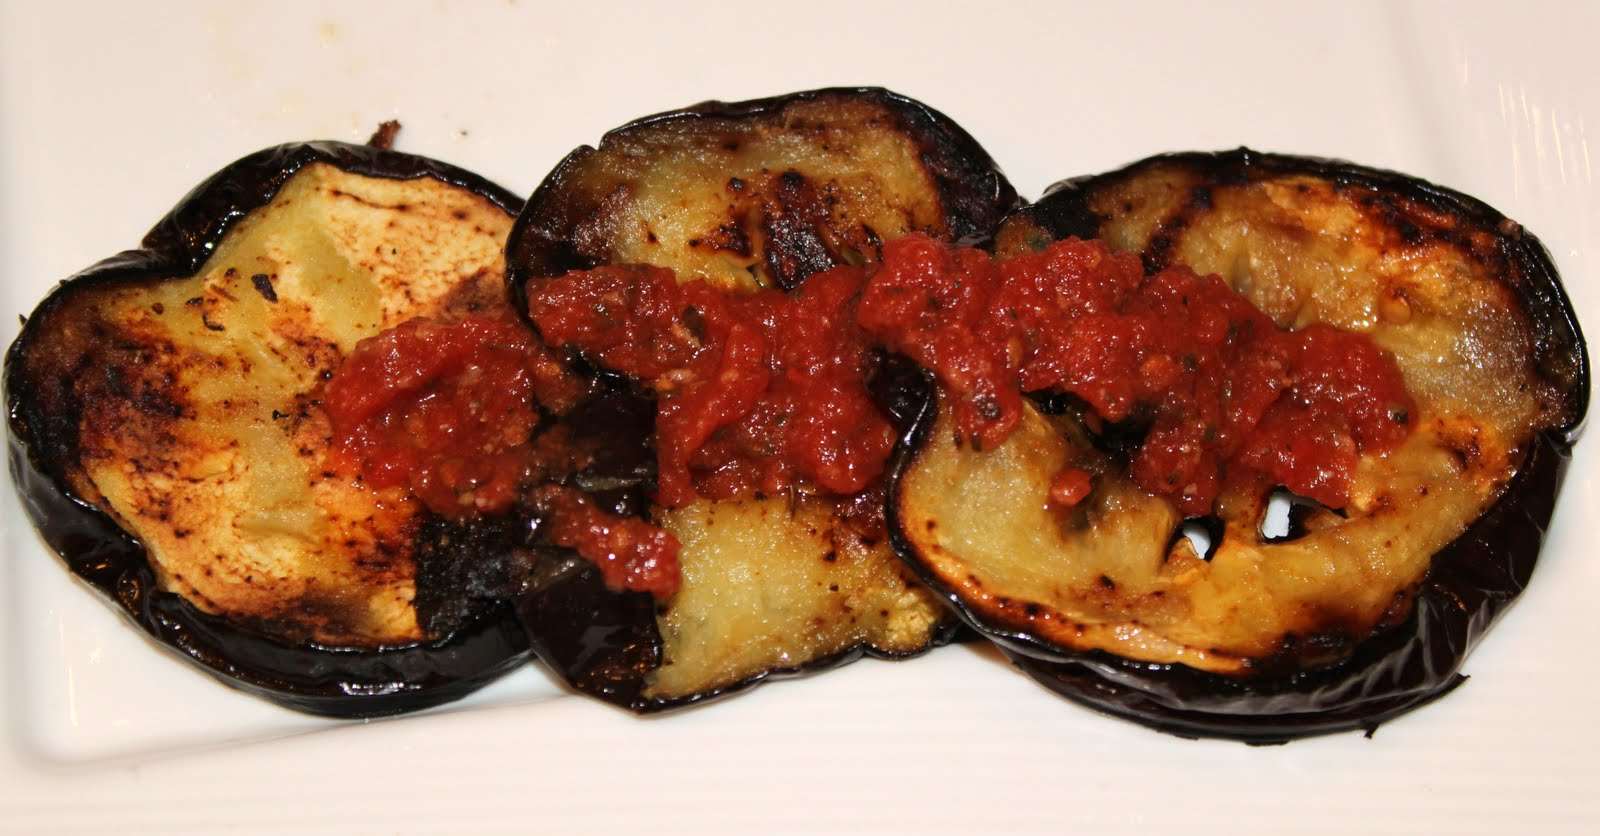 Grilled eggplant with marinara parmesan what 39 s cookin for Side dish recipes for grilling out